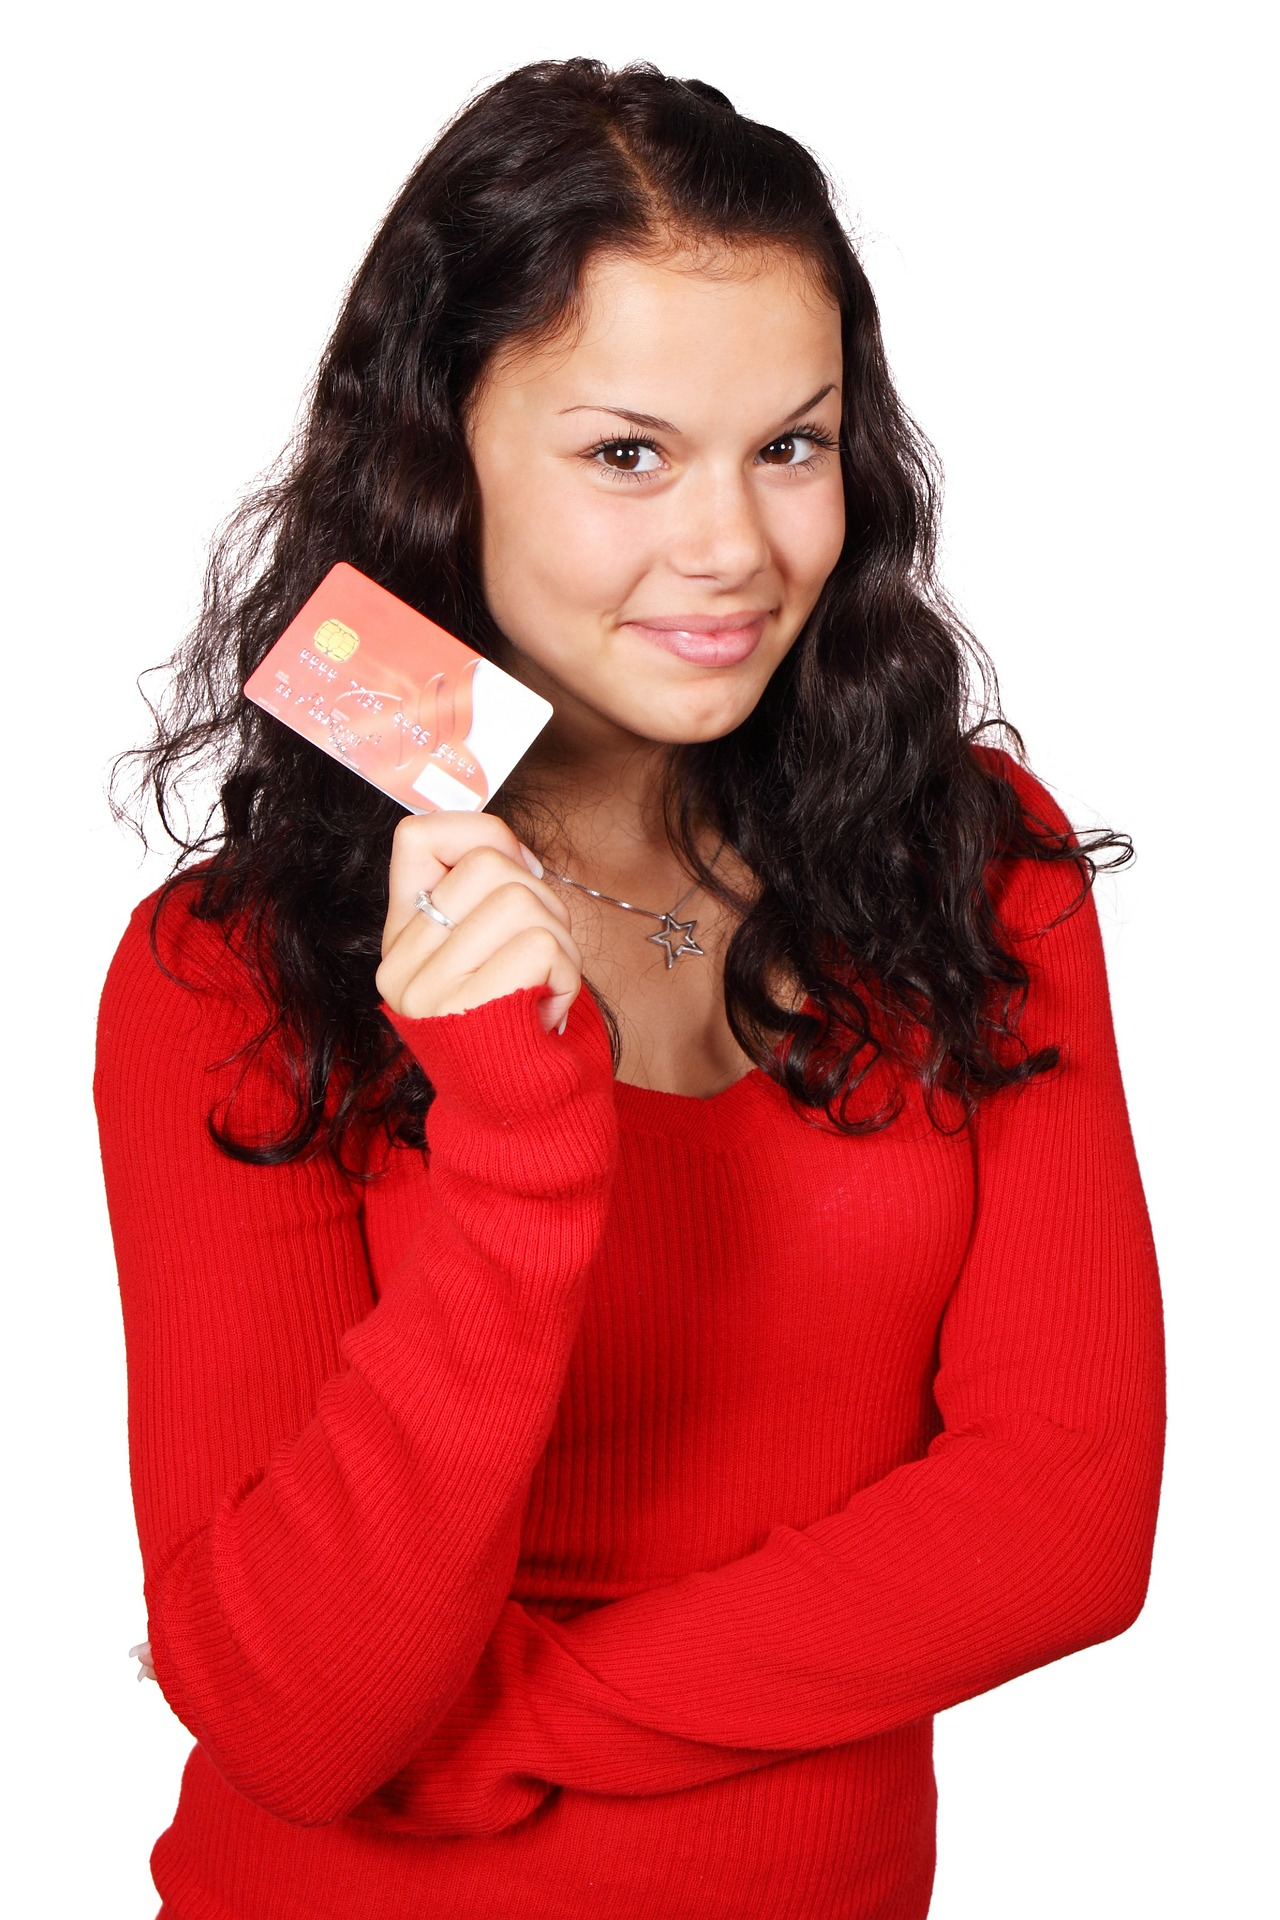 What alternatives you have for payday loan?